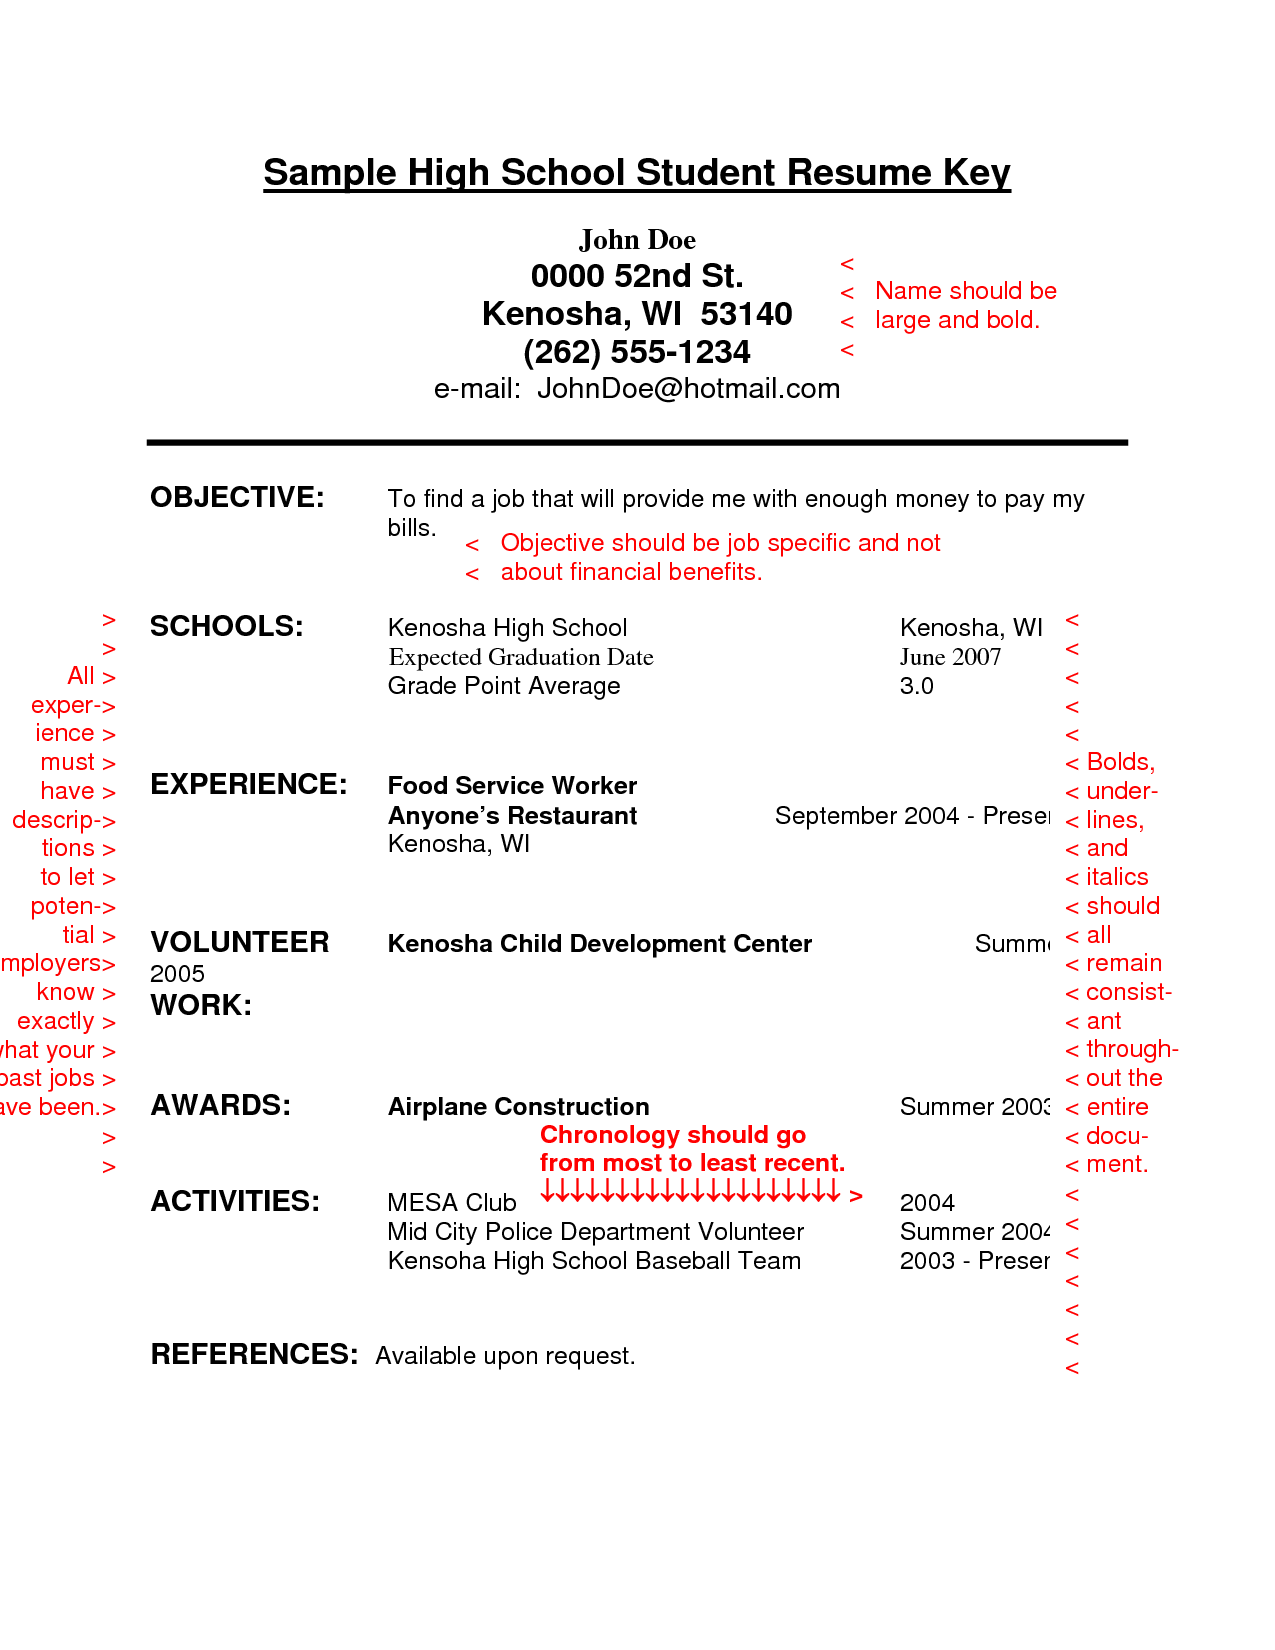 resume examples for high school students | 1-resume examples